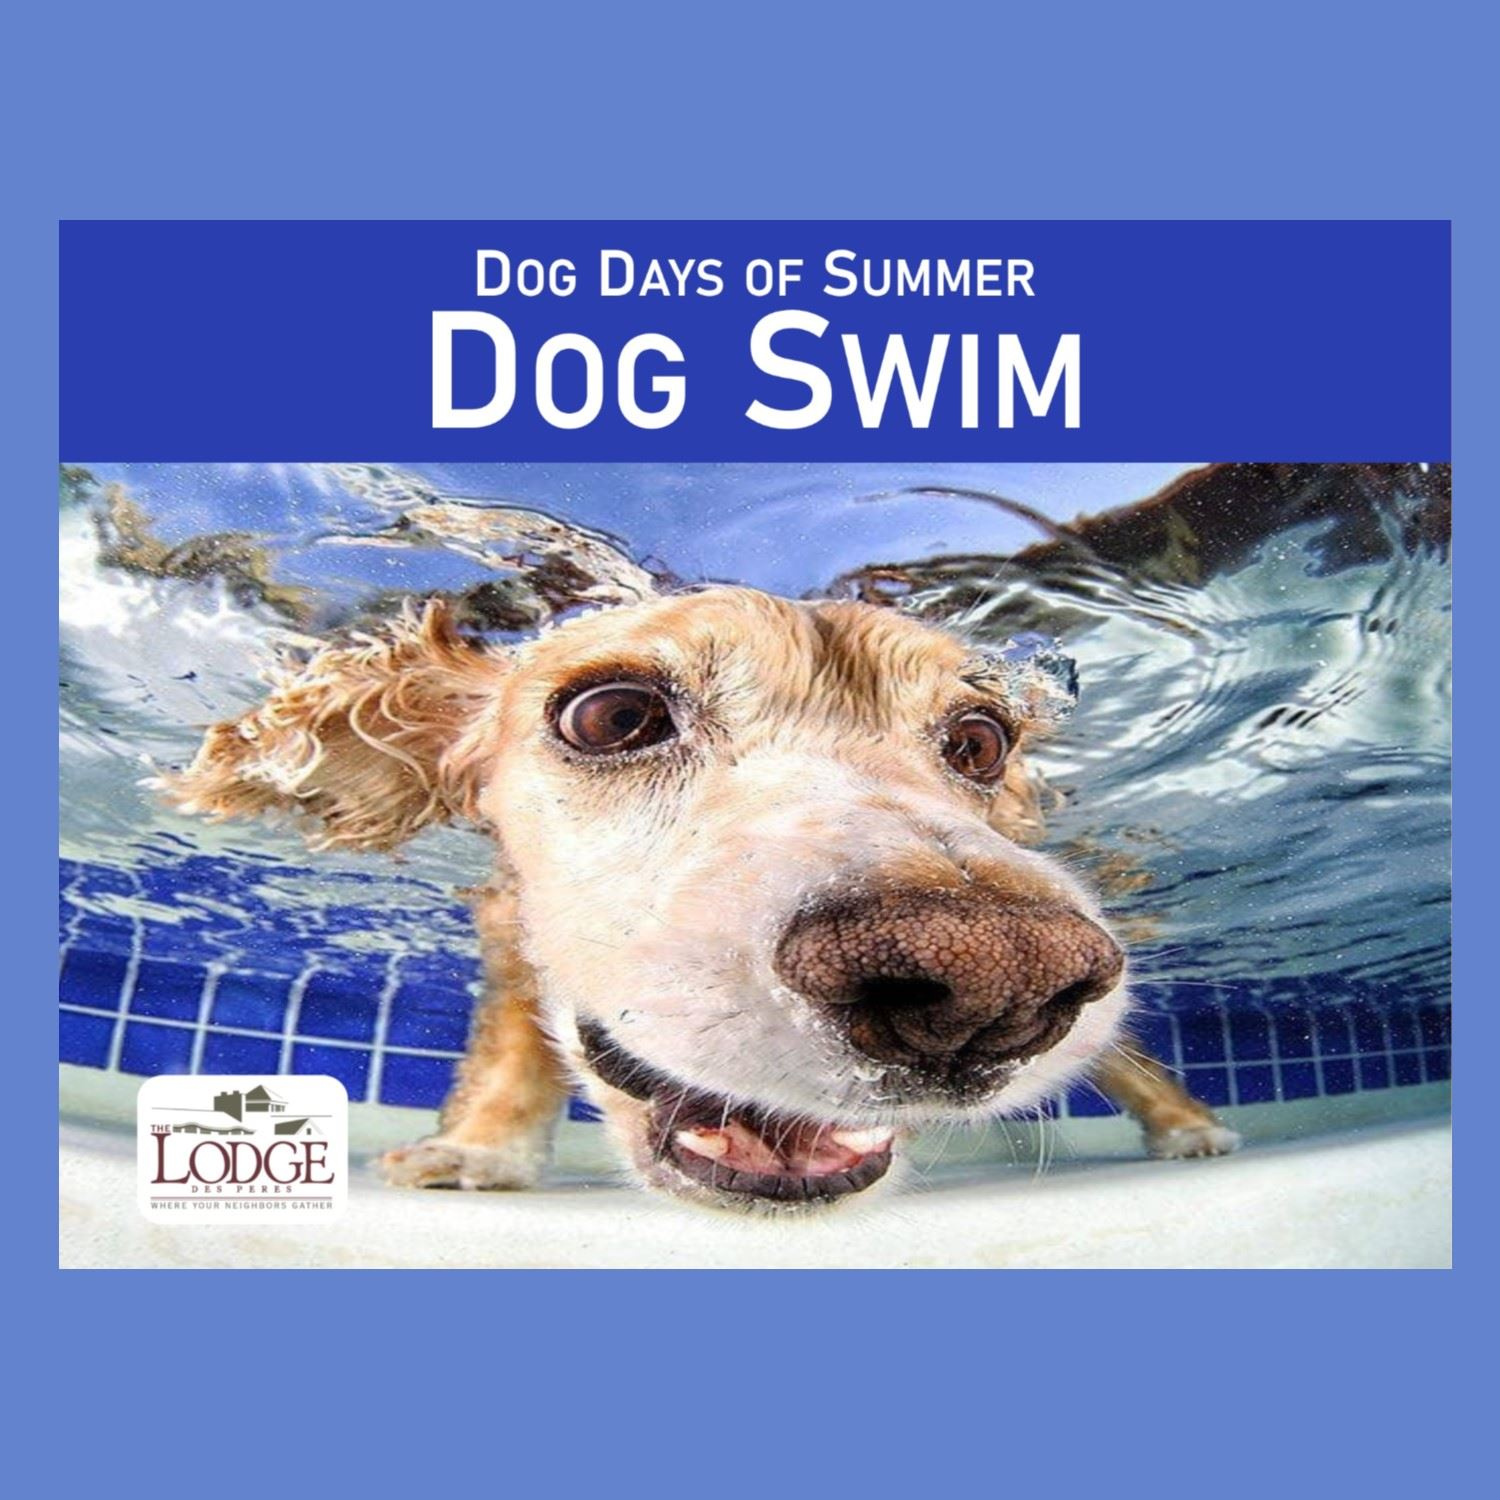 Dog Days of Summer Dog Swim Spotlight